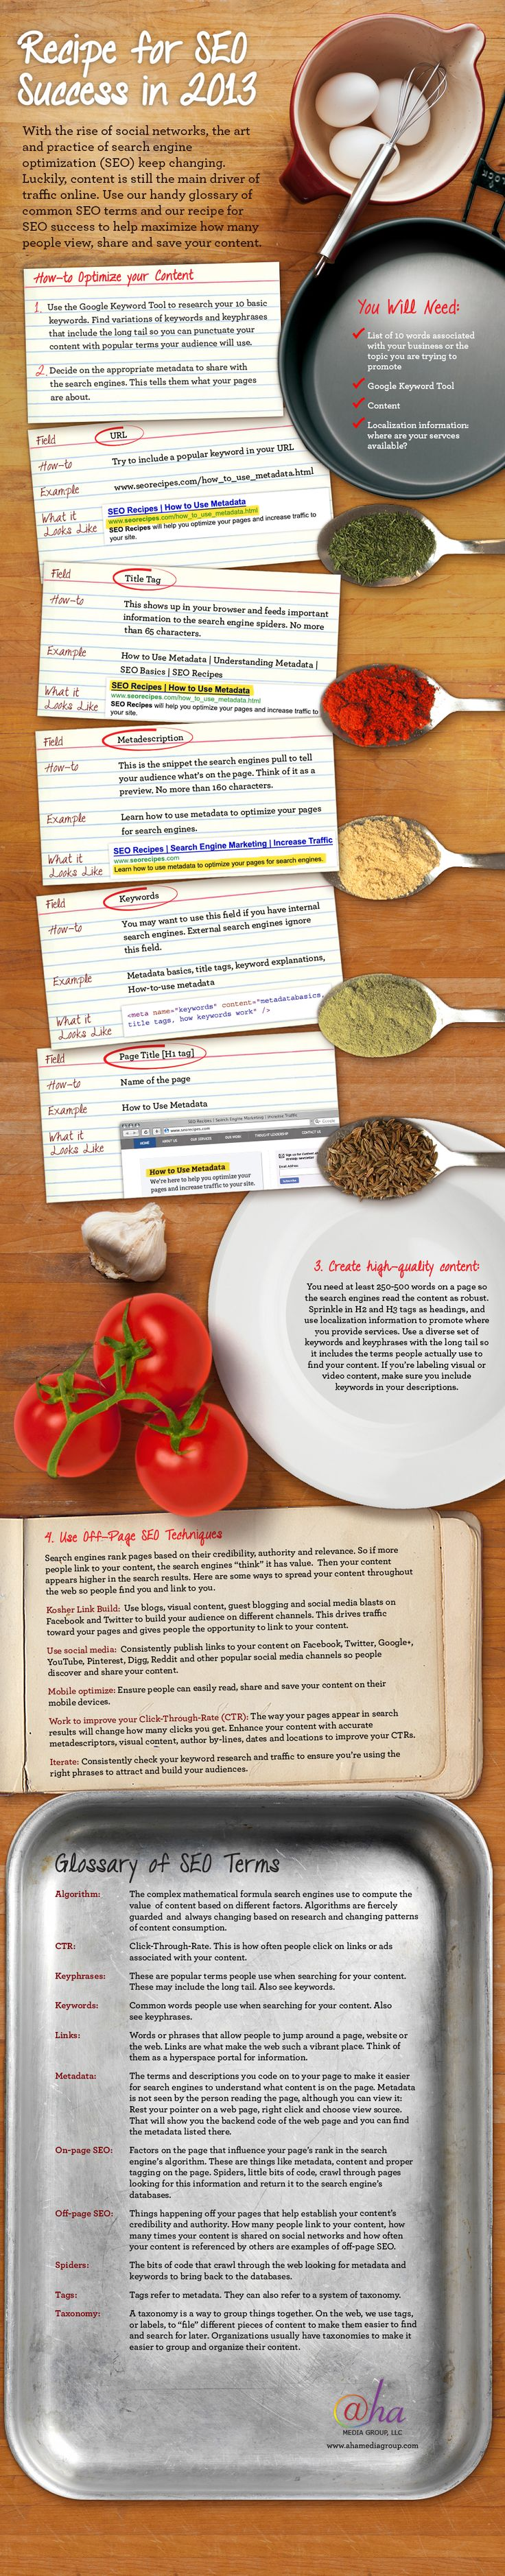 Recipe for SEO success in 2013 #infographic